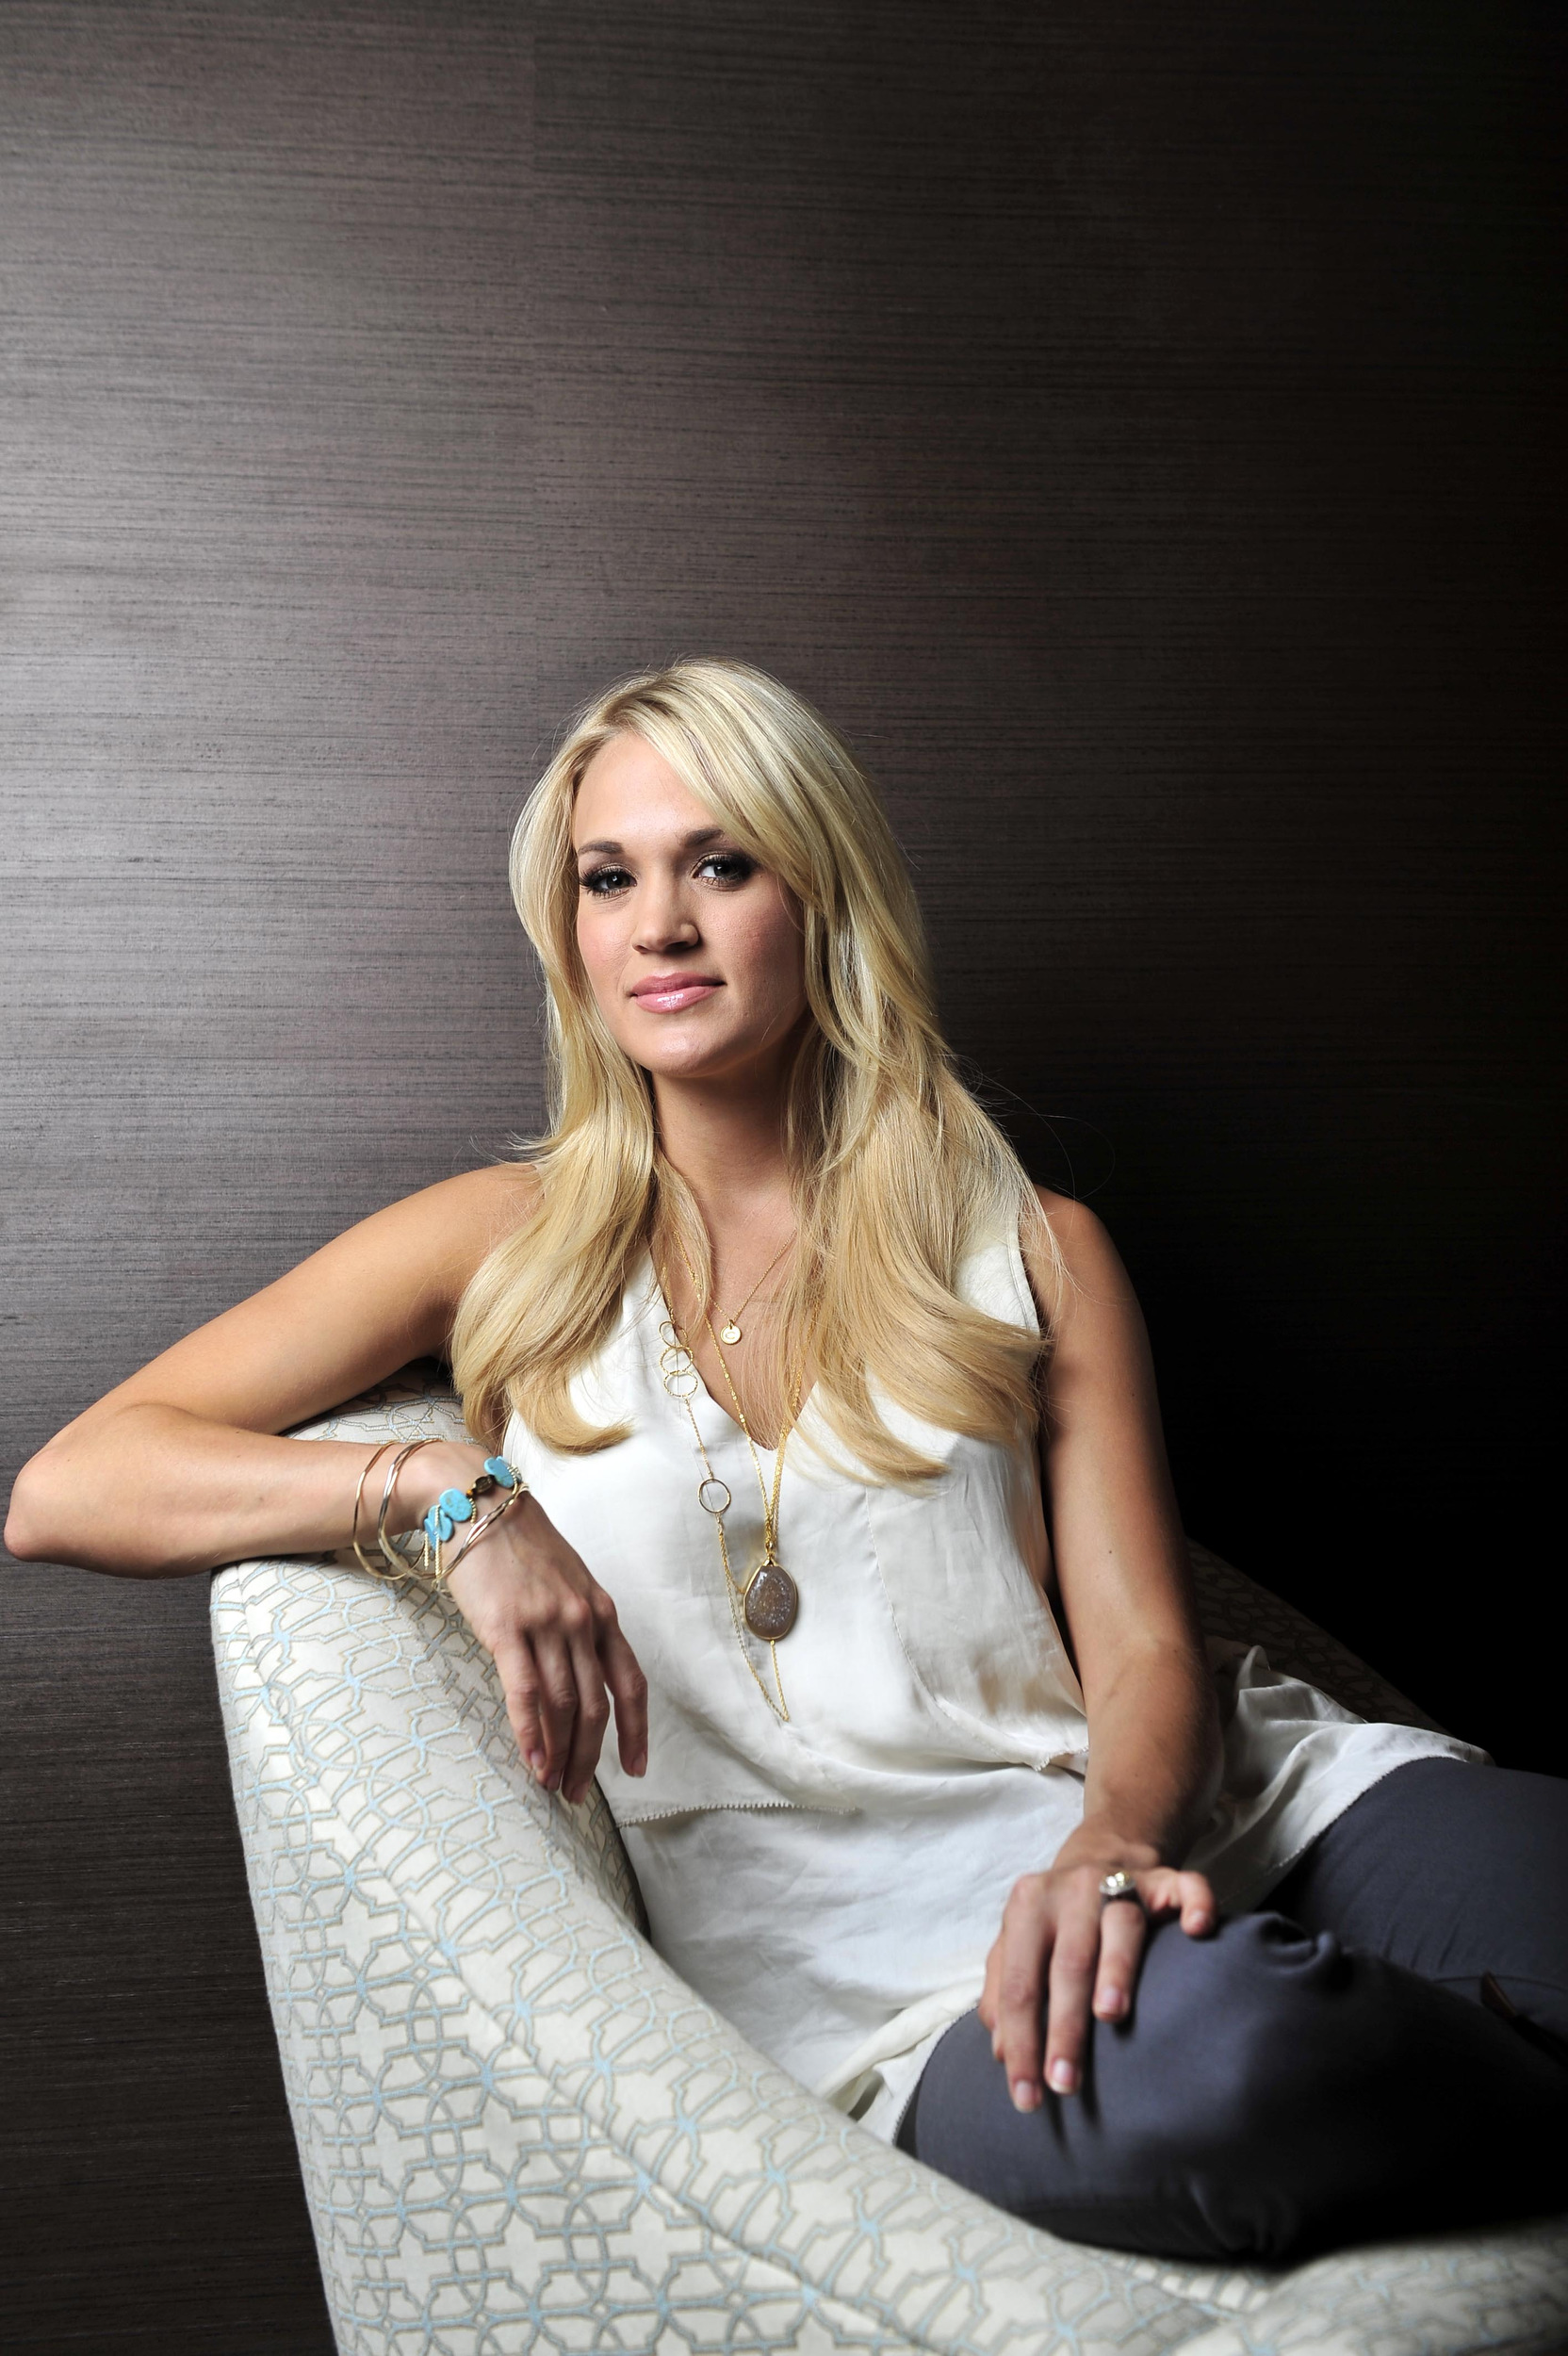 Carrie Underwood backstage at the Grand Ole Opry.